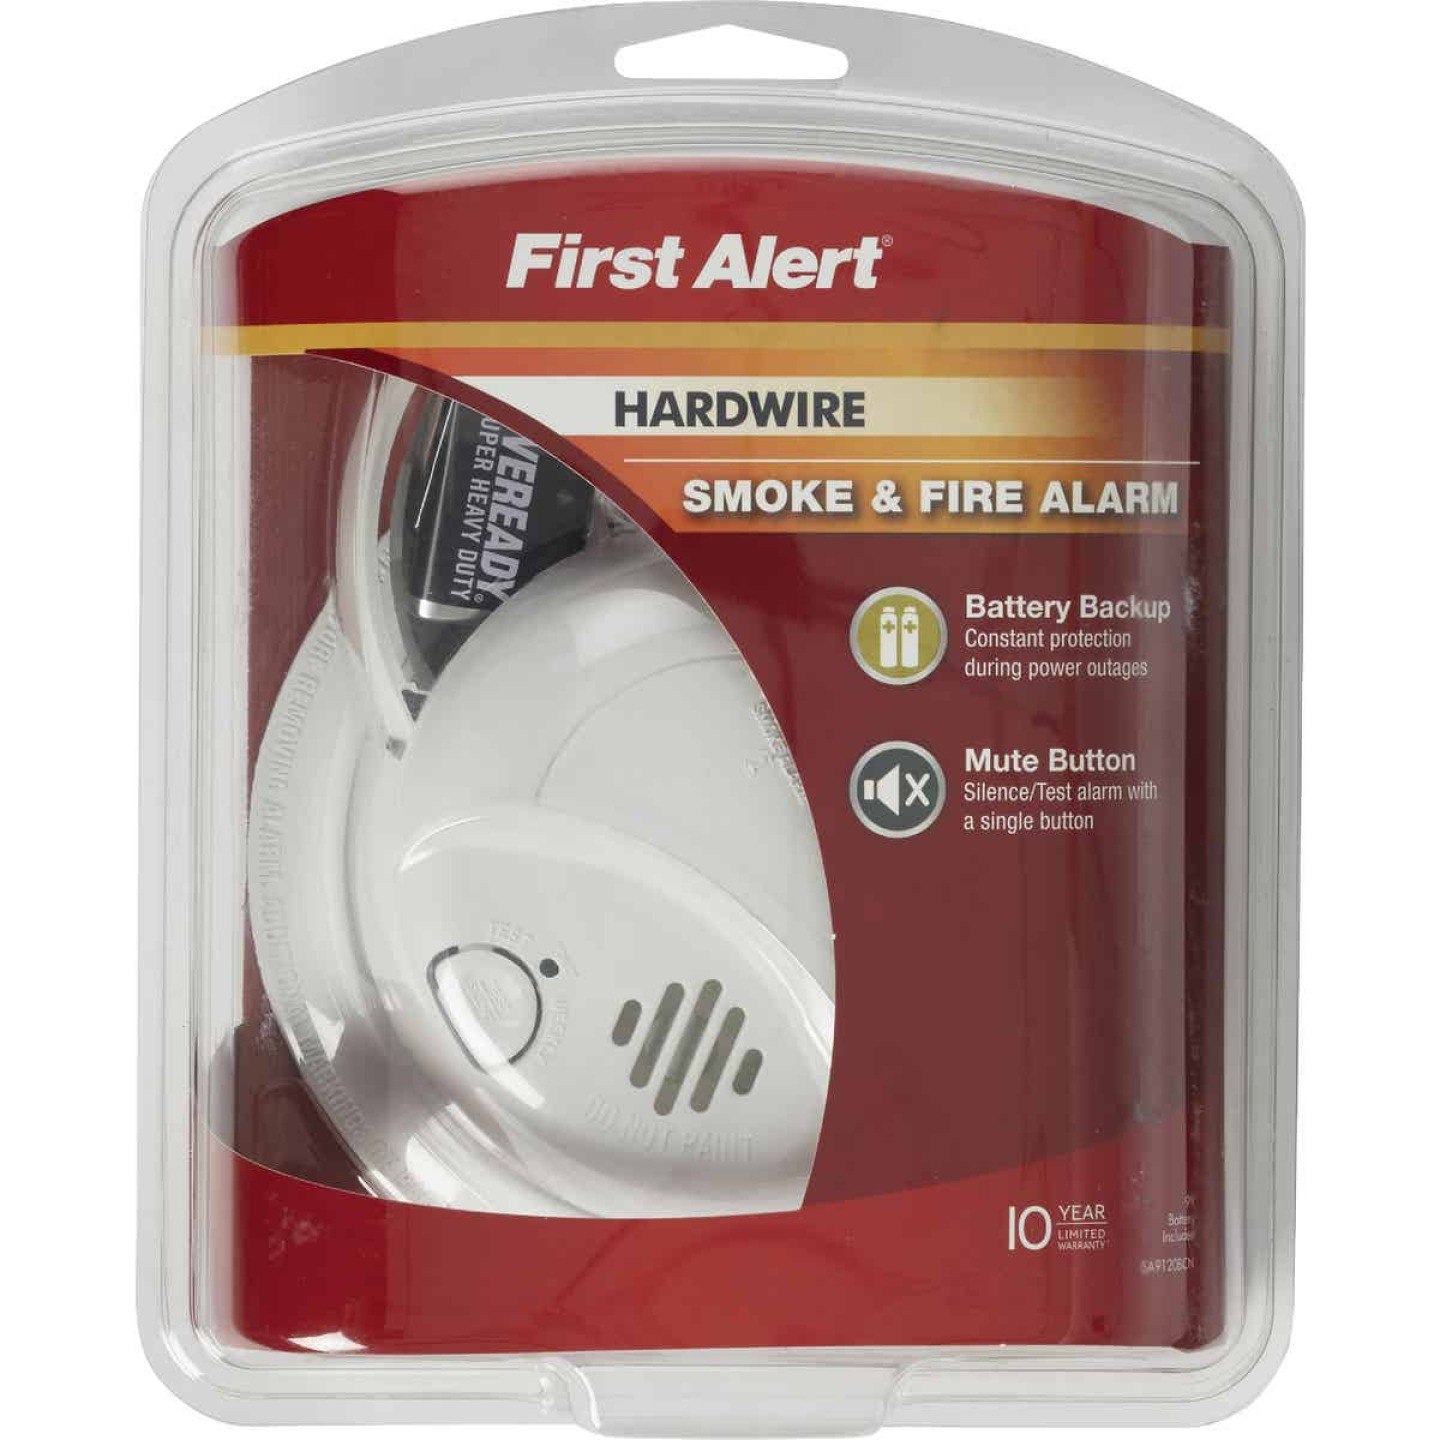 First Alert Hardwired 120V Ionization Smoke Alarm Image 2